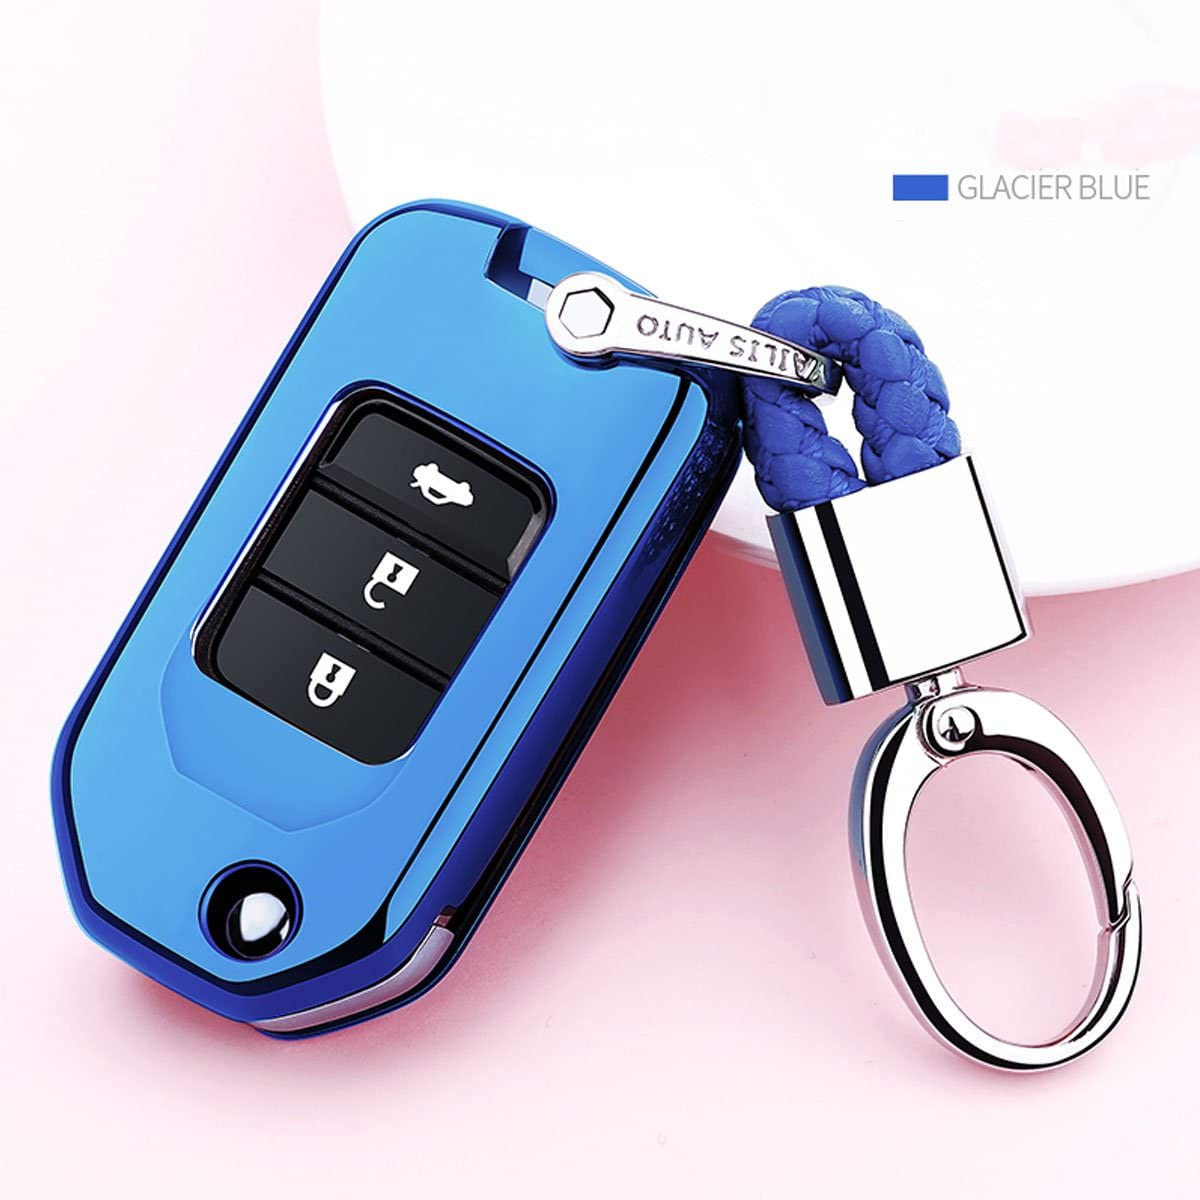 Key Fob Cover for Honda,Soft TPU Key Fob Case All-Around Protector Plating Shell Fit Keyless Smart Remote Key of Honda Accord Civic CRV Pilot Odyssey Fit HRV Clarity CRZ Ridgeline EX EX-L Red